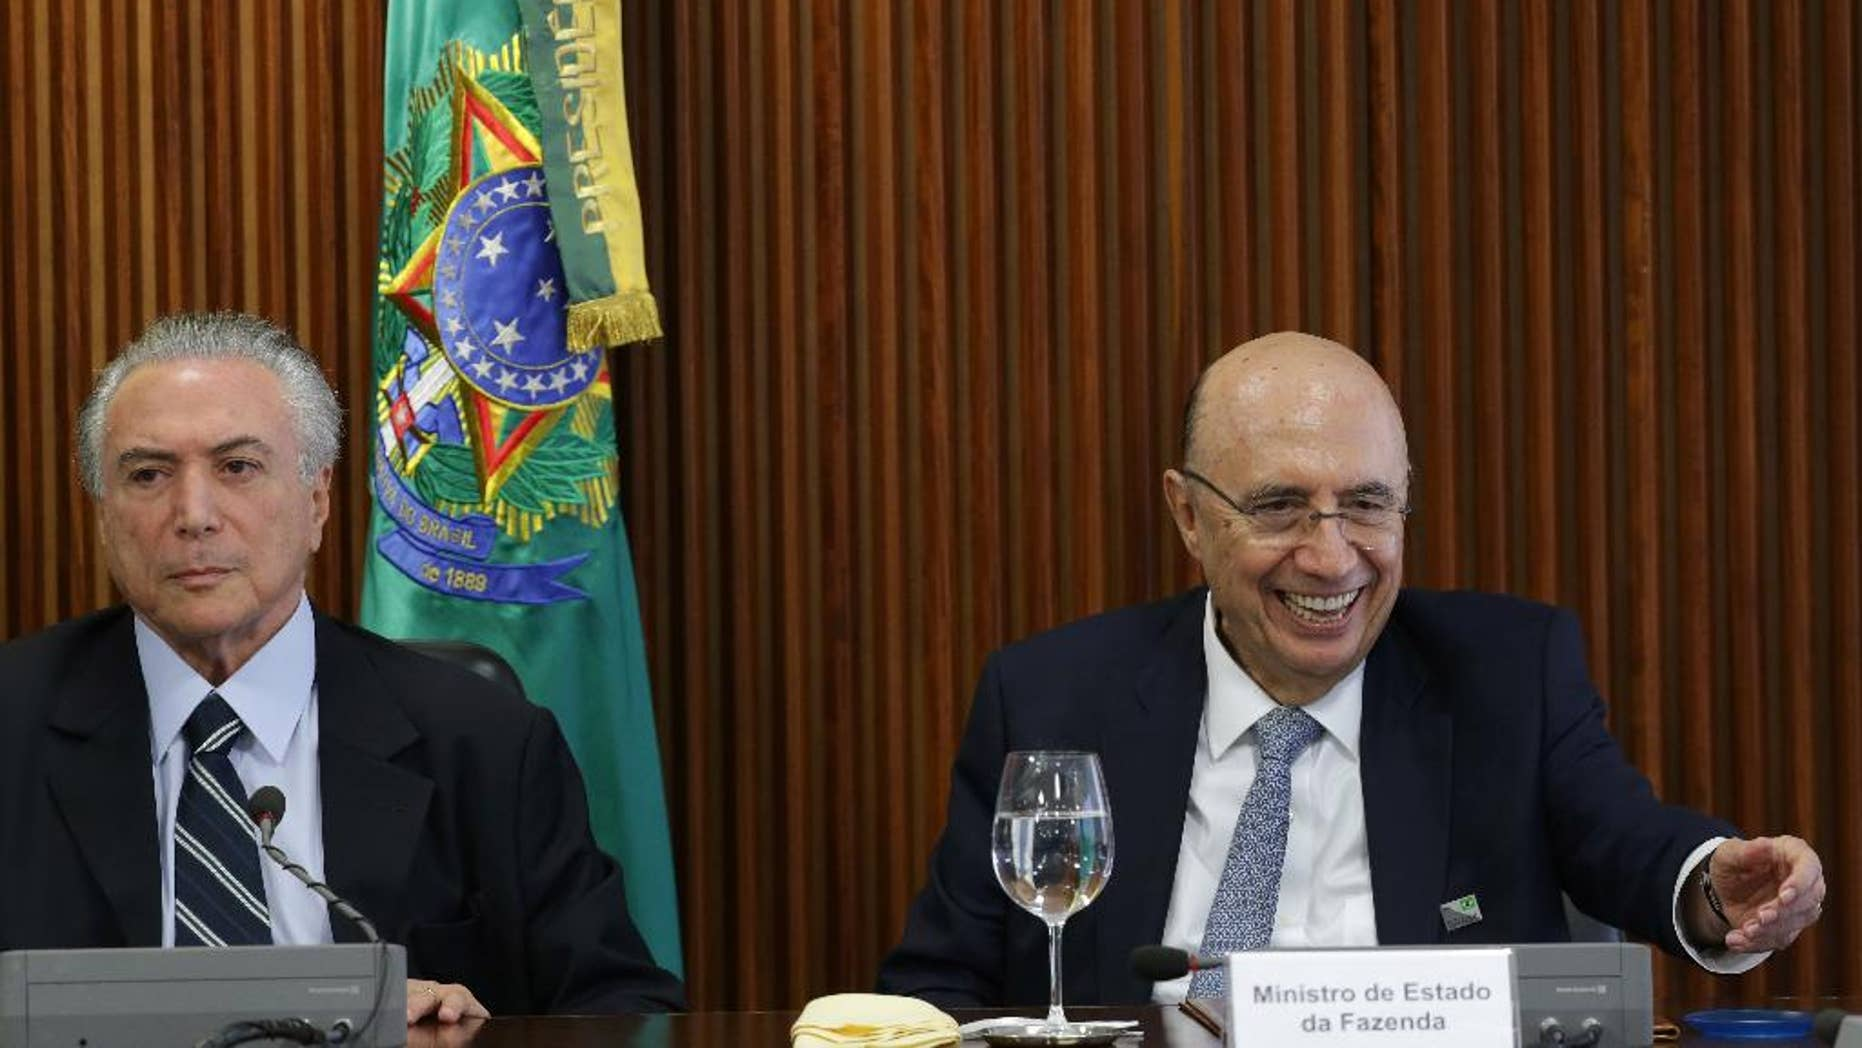 Brazil's acting President Michel Temer, left, presides over his first cabinet meeting, at the Planalto presidential palace in Brasilia, Brazil, Friday, May 13, 2016.  Newly named Finance Minister Henrique Meirelles is pictured at right. (AP Photo/Eraldo Peres)